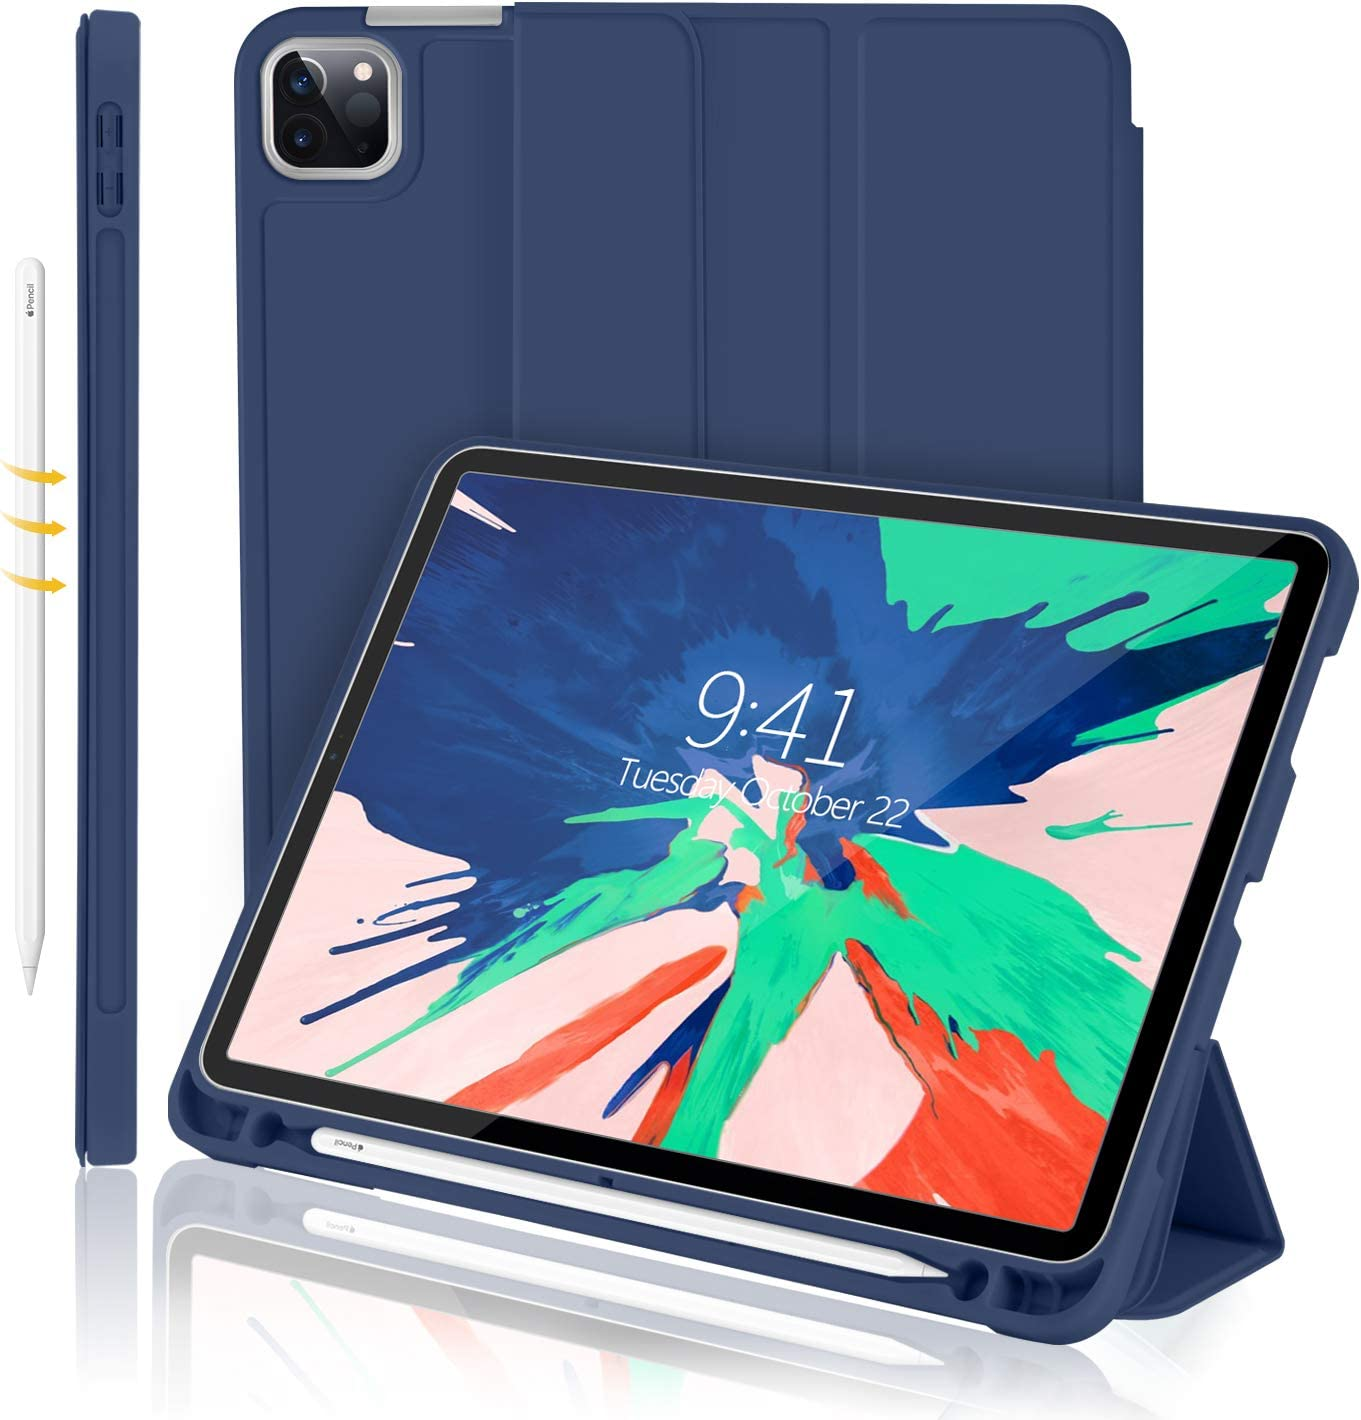 iMieet New iPad Pro 11 Case 2020 with Pencil Holder [Support iPad 2nd Pencil Charging/Pair],Trifold Stand Smart Case with Soft TPU Back,Auto Wake/Sleep (Navy Blue)